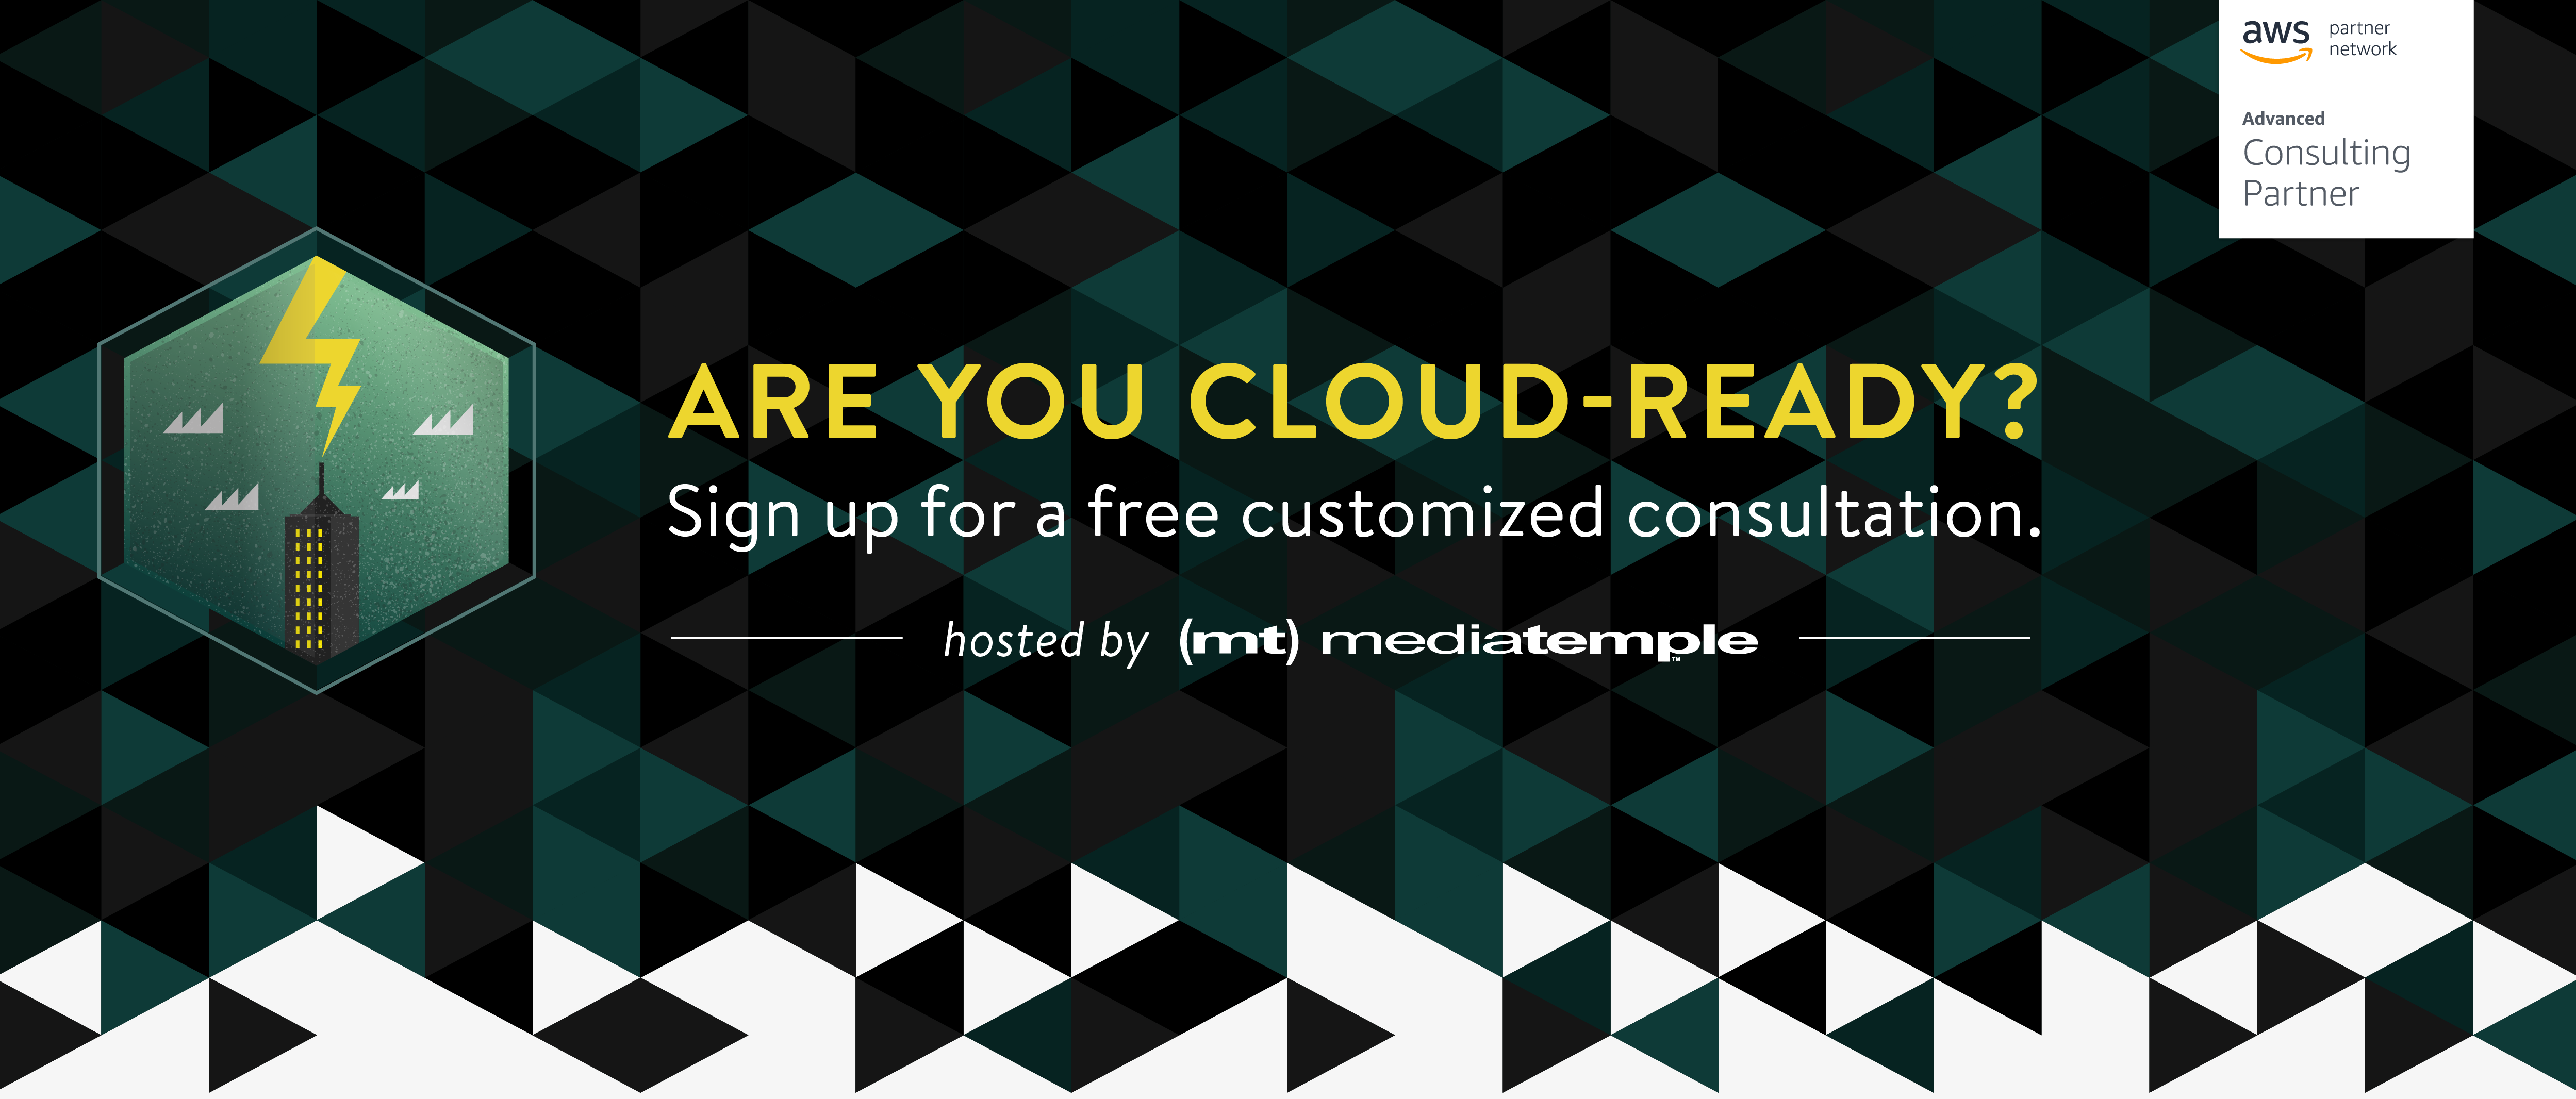 Are you cloud-ready?